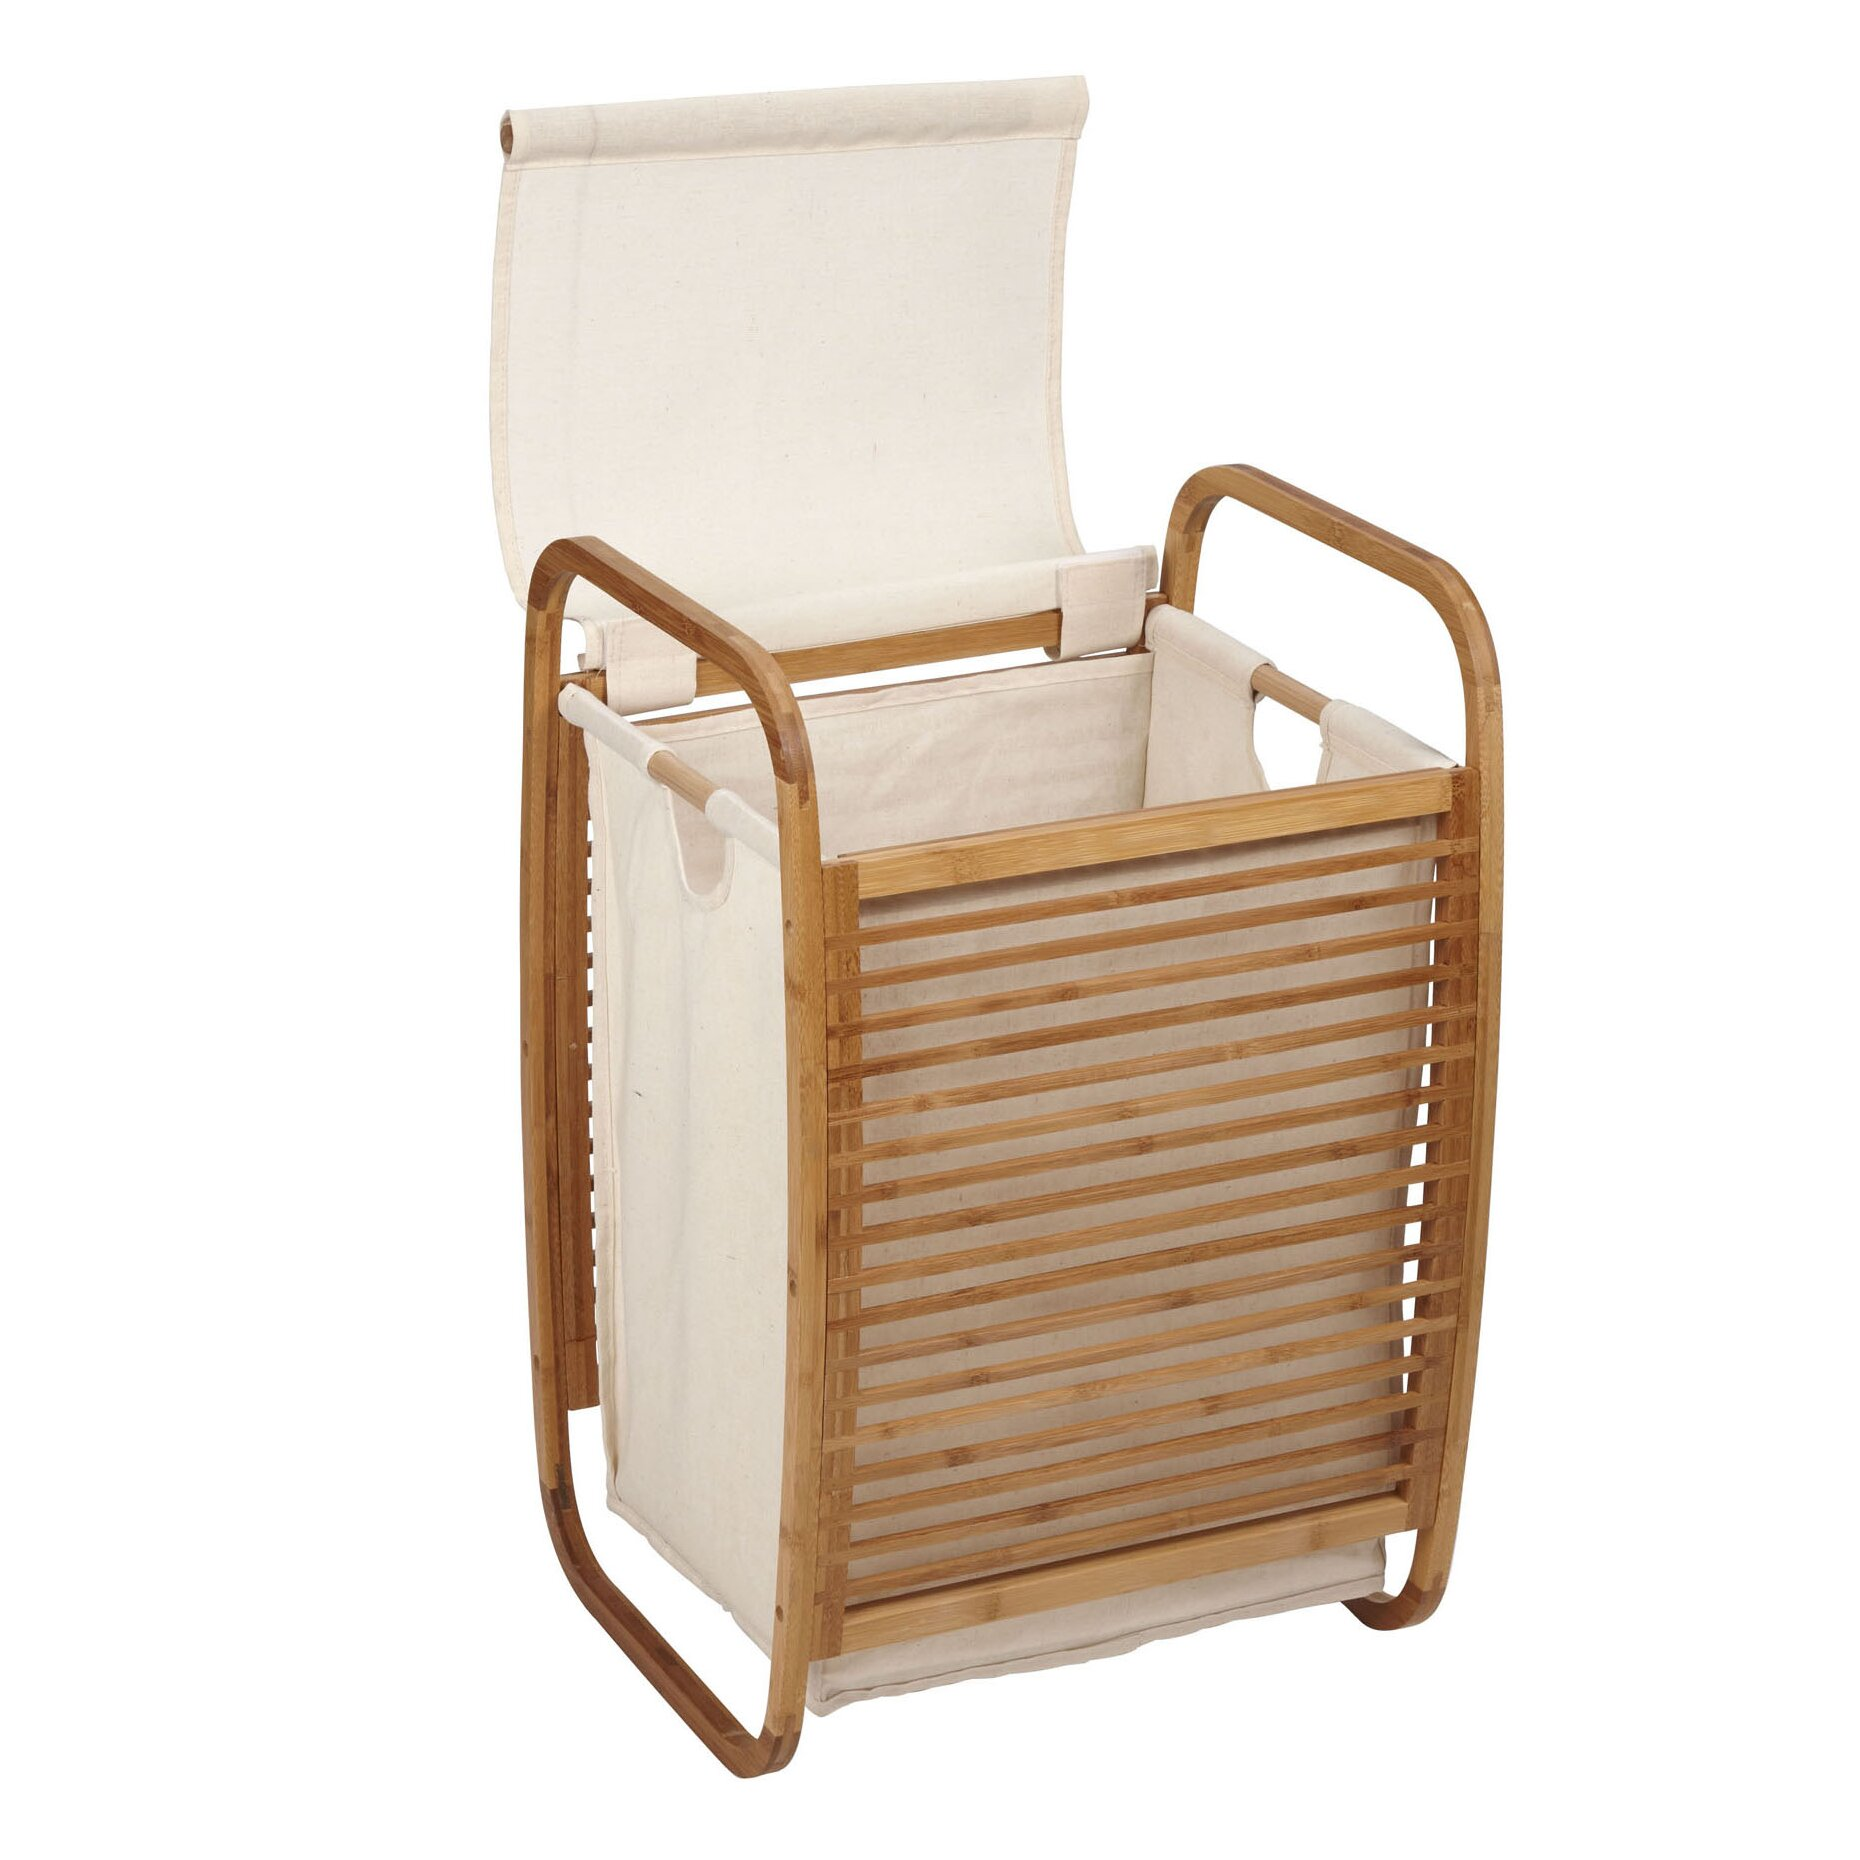 Household Essentials Bowed Bamboo Compact Laundry Hamper